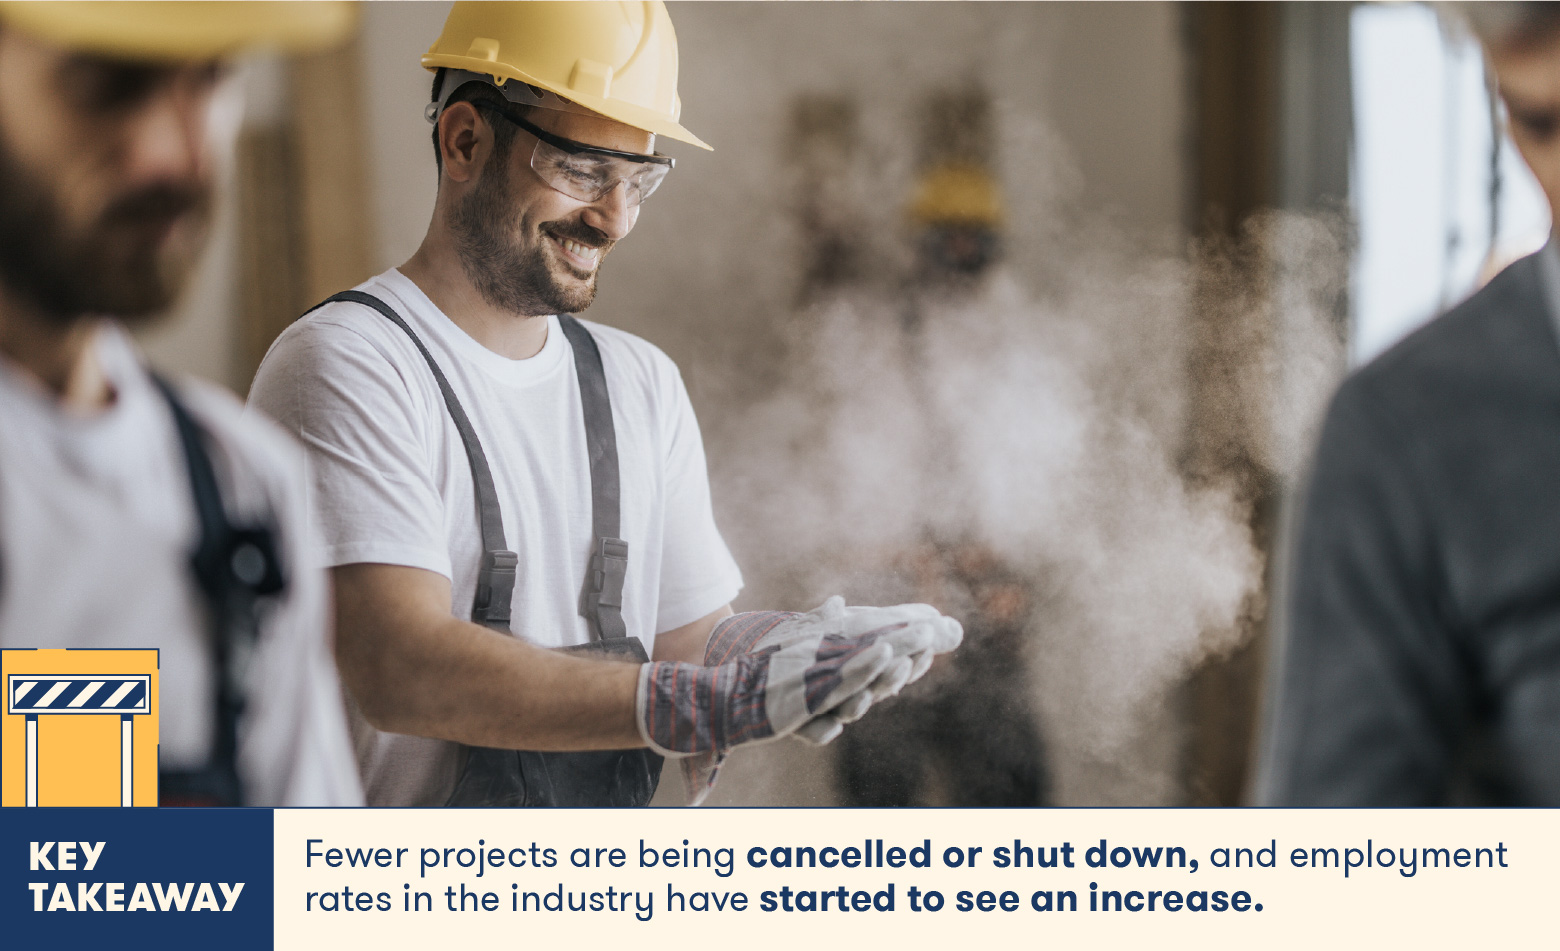 Fewer projects are being closed or shut down